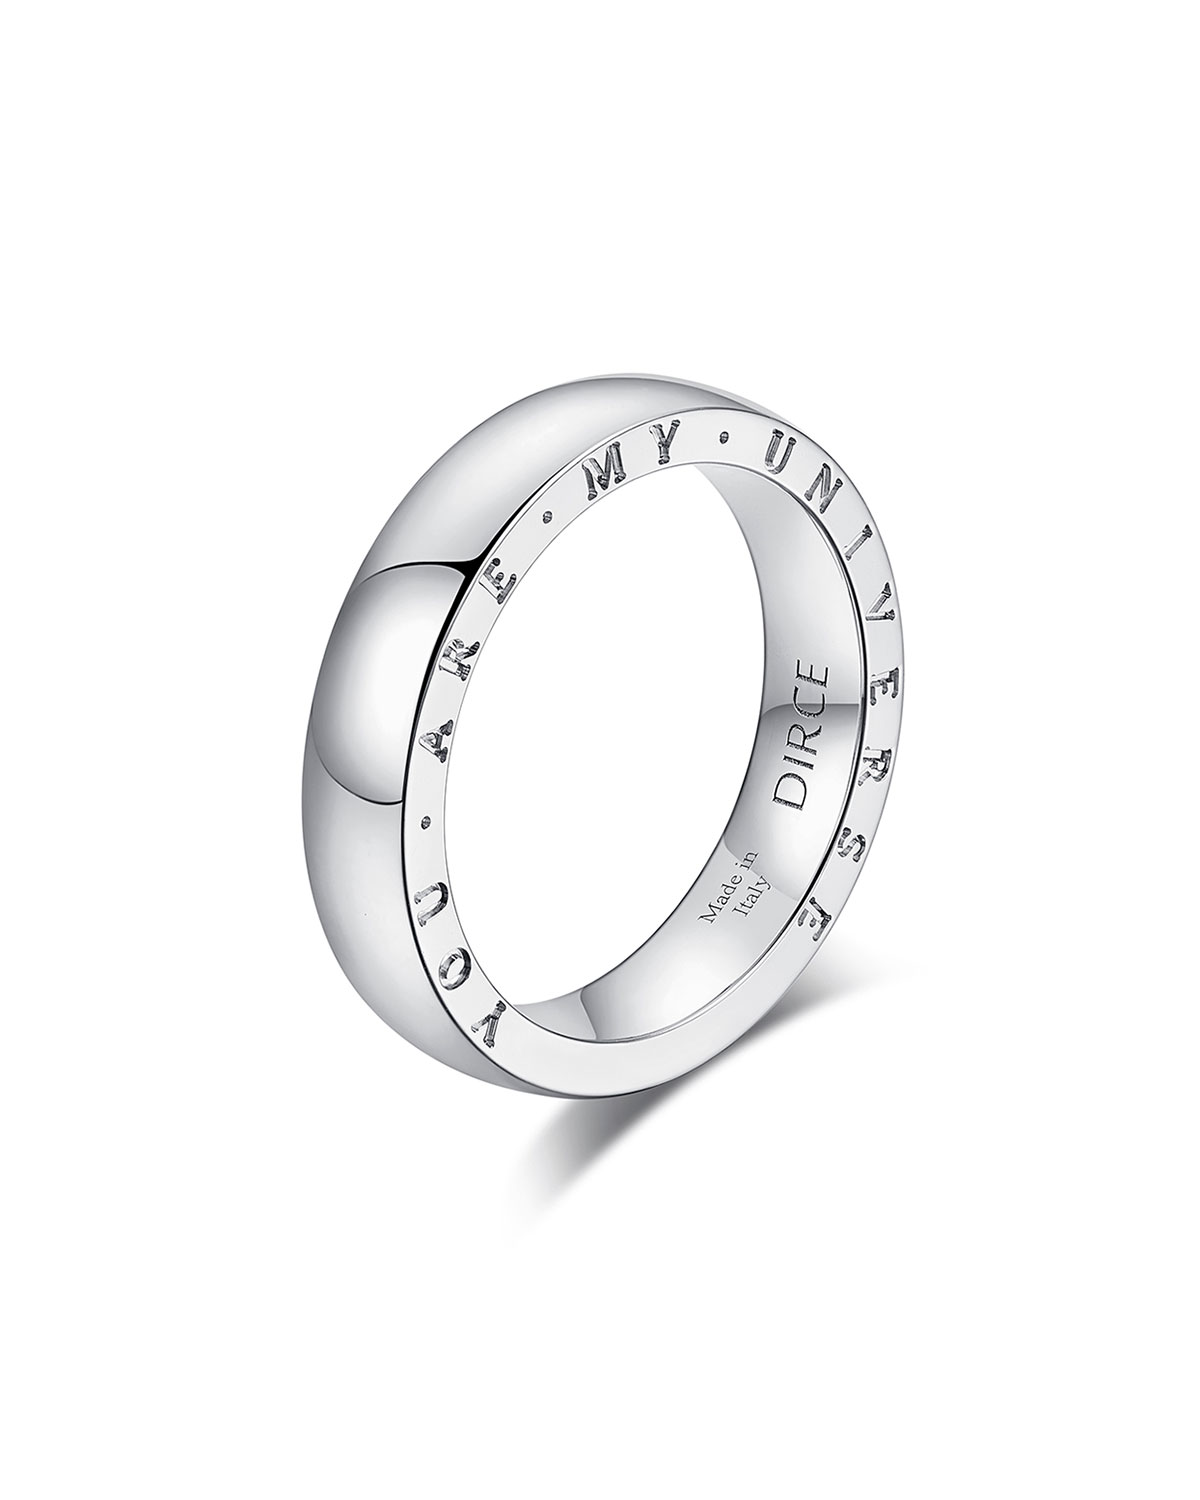 """Dirce """"You Are My Universe"""" 18k White Gold 4.3mm Band Ring, Size 6.25"""